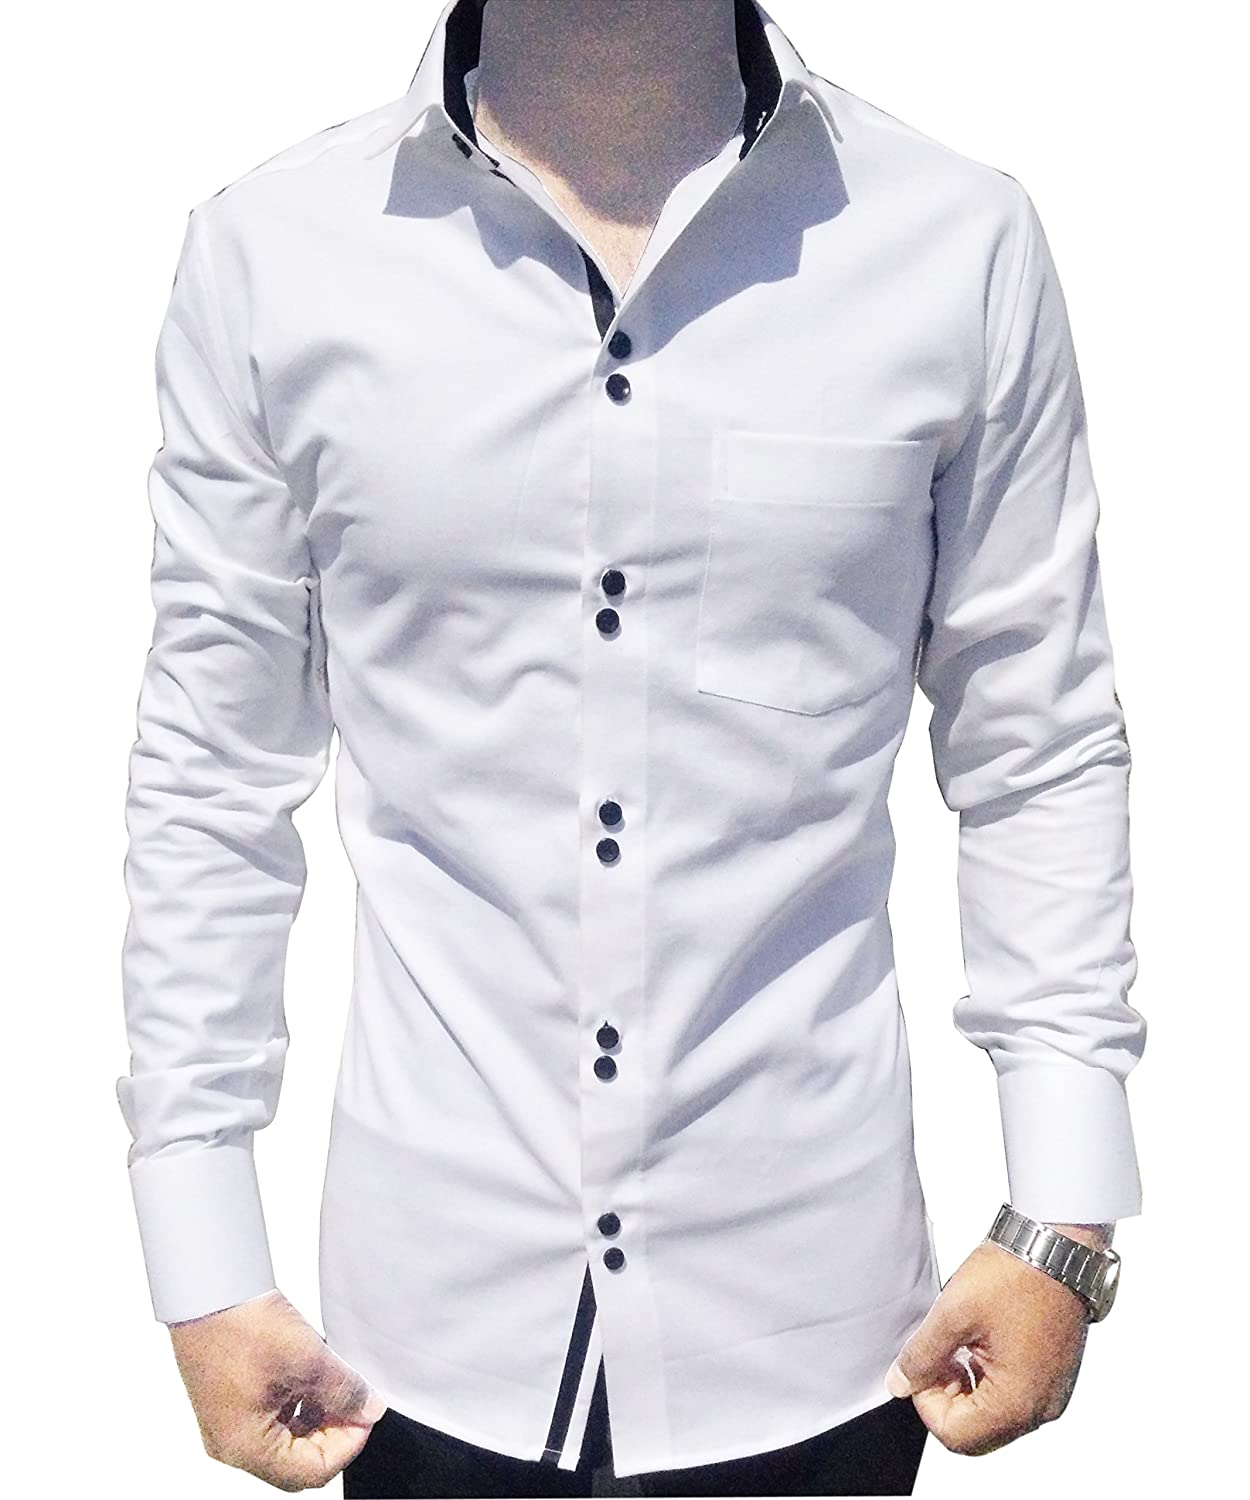 White Shirts for Men: Buy White Shirts for Men Online at Best ...